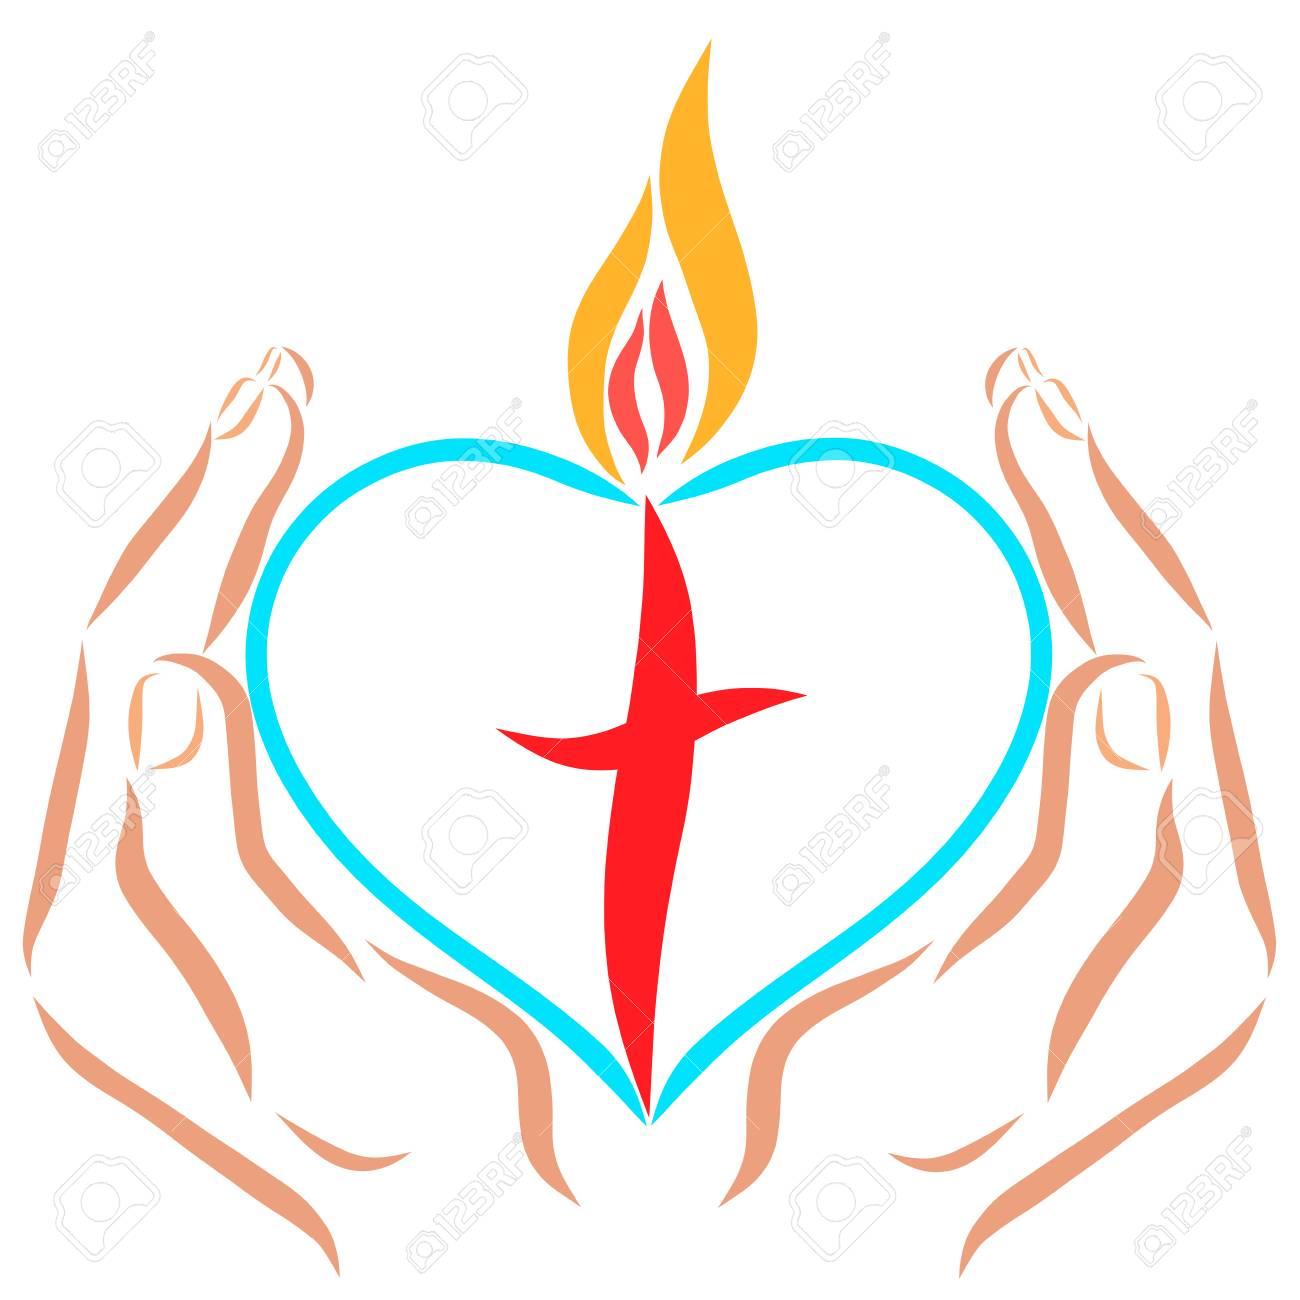 Hands holding a heart with a cross and flame - 121711224